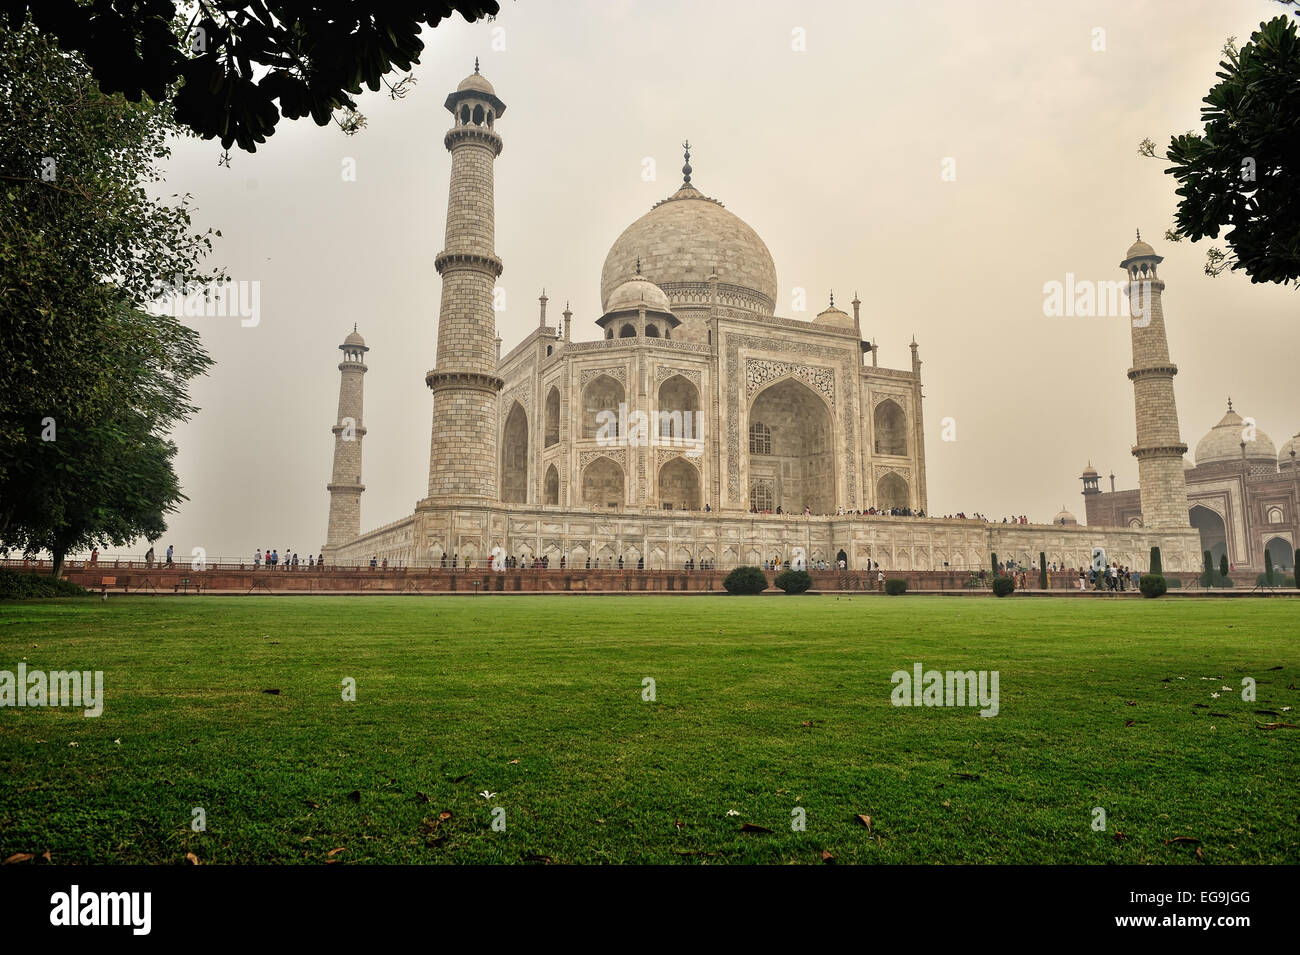 Today, some 3 million people a year (or around 45,000 a day during peak tourist season) visit the Taj Mahal - Stock Image